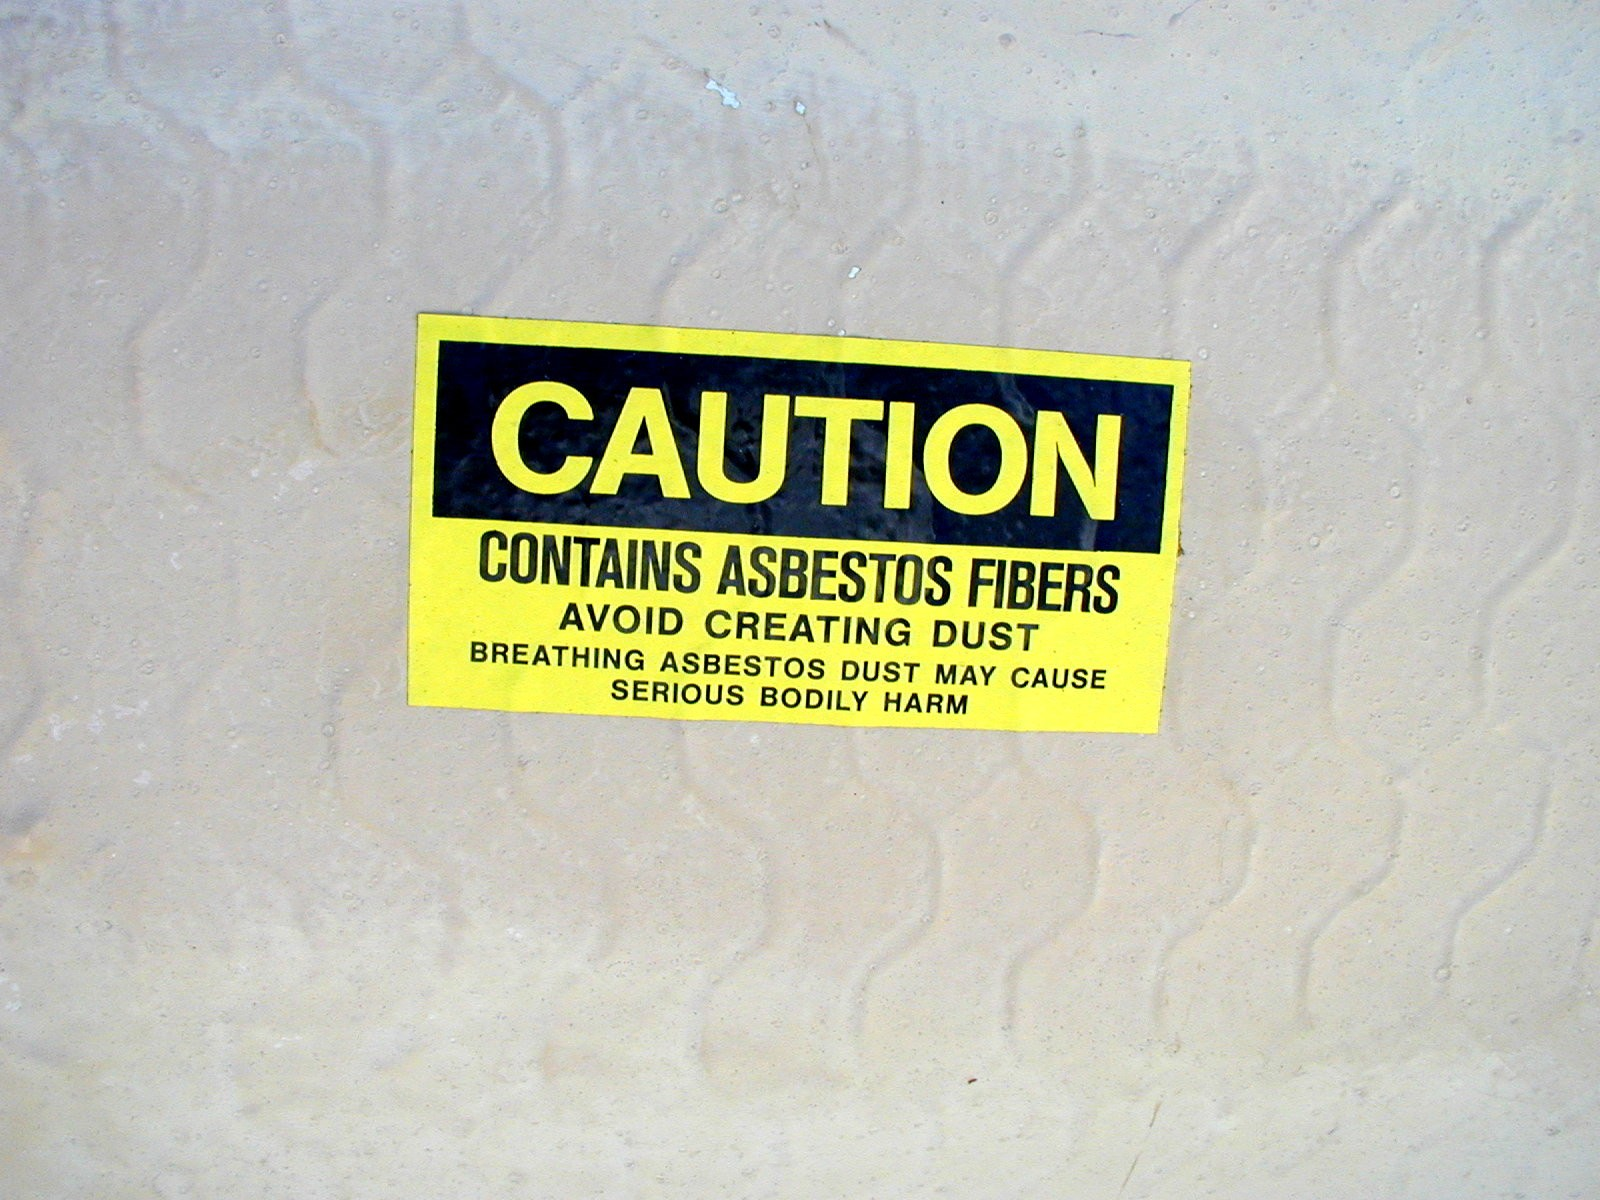 Asbestos | Santa Barbara County Air Pollution Control District